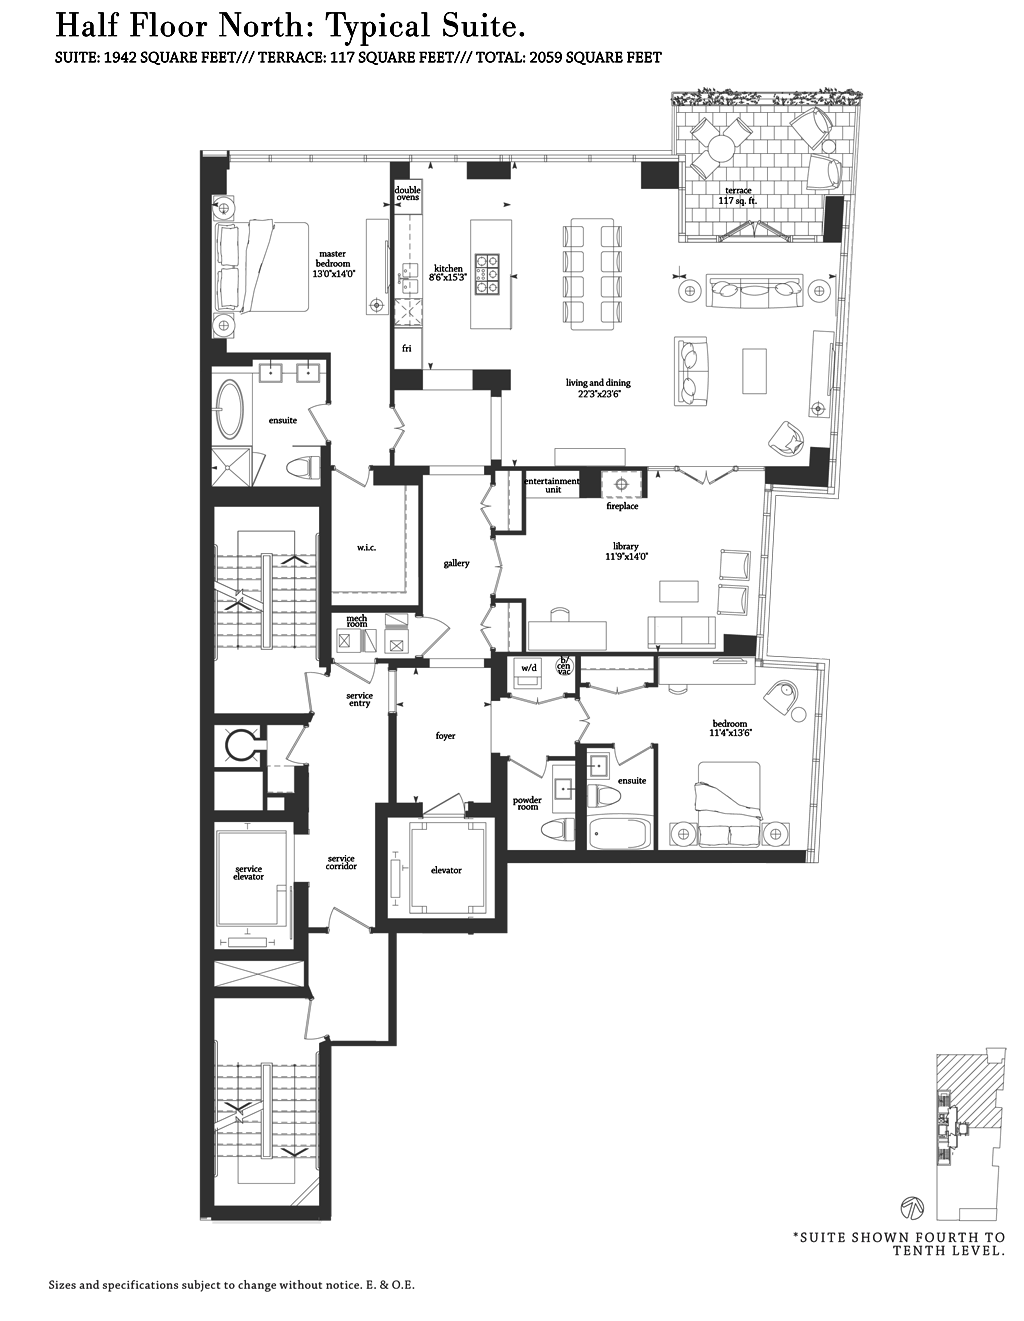 7000 sq ft house plans 7000 sq ft home plans related for 7000 sq ft house plans